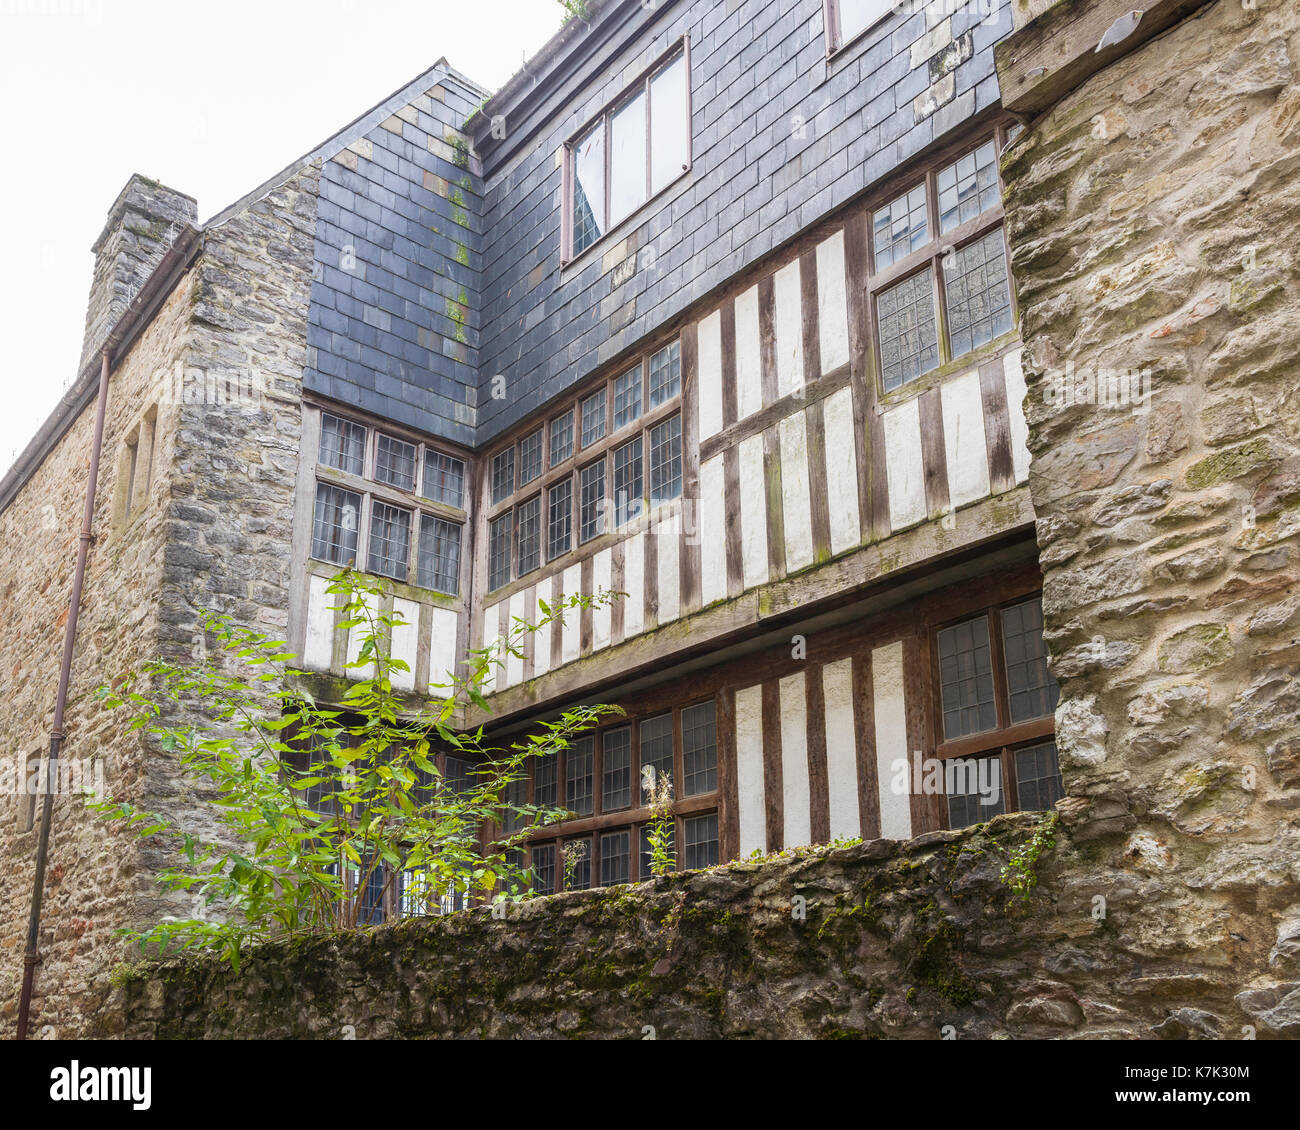 The 16th/17th century Merchant's House Museum in the historic Barbican area of Plymouth, Devon, UK Stock Photo